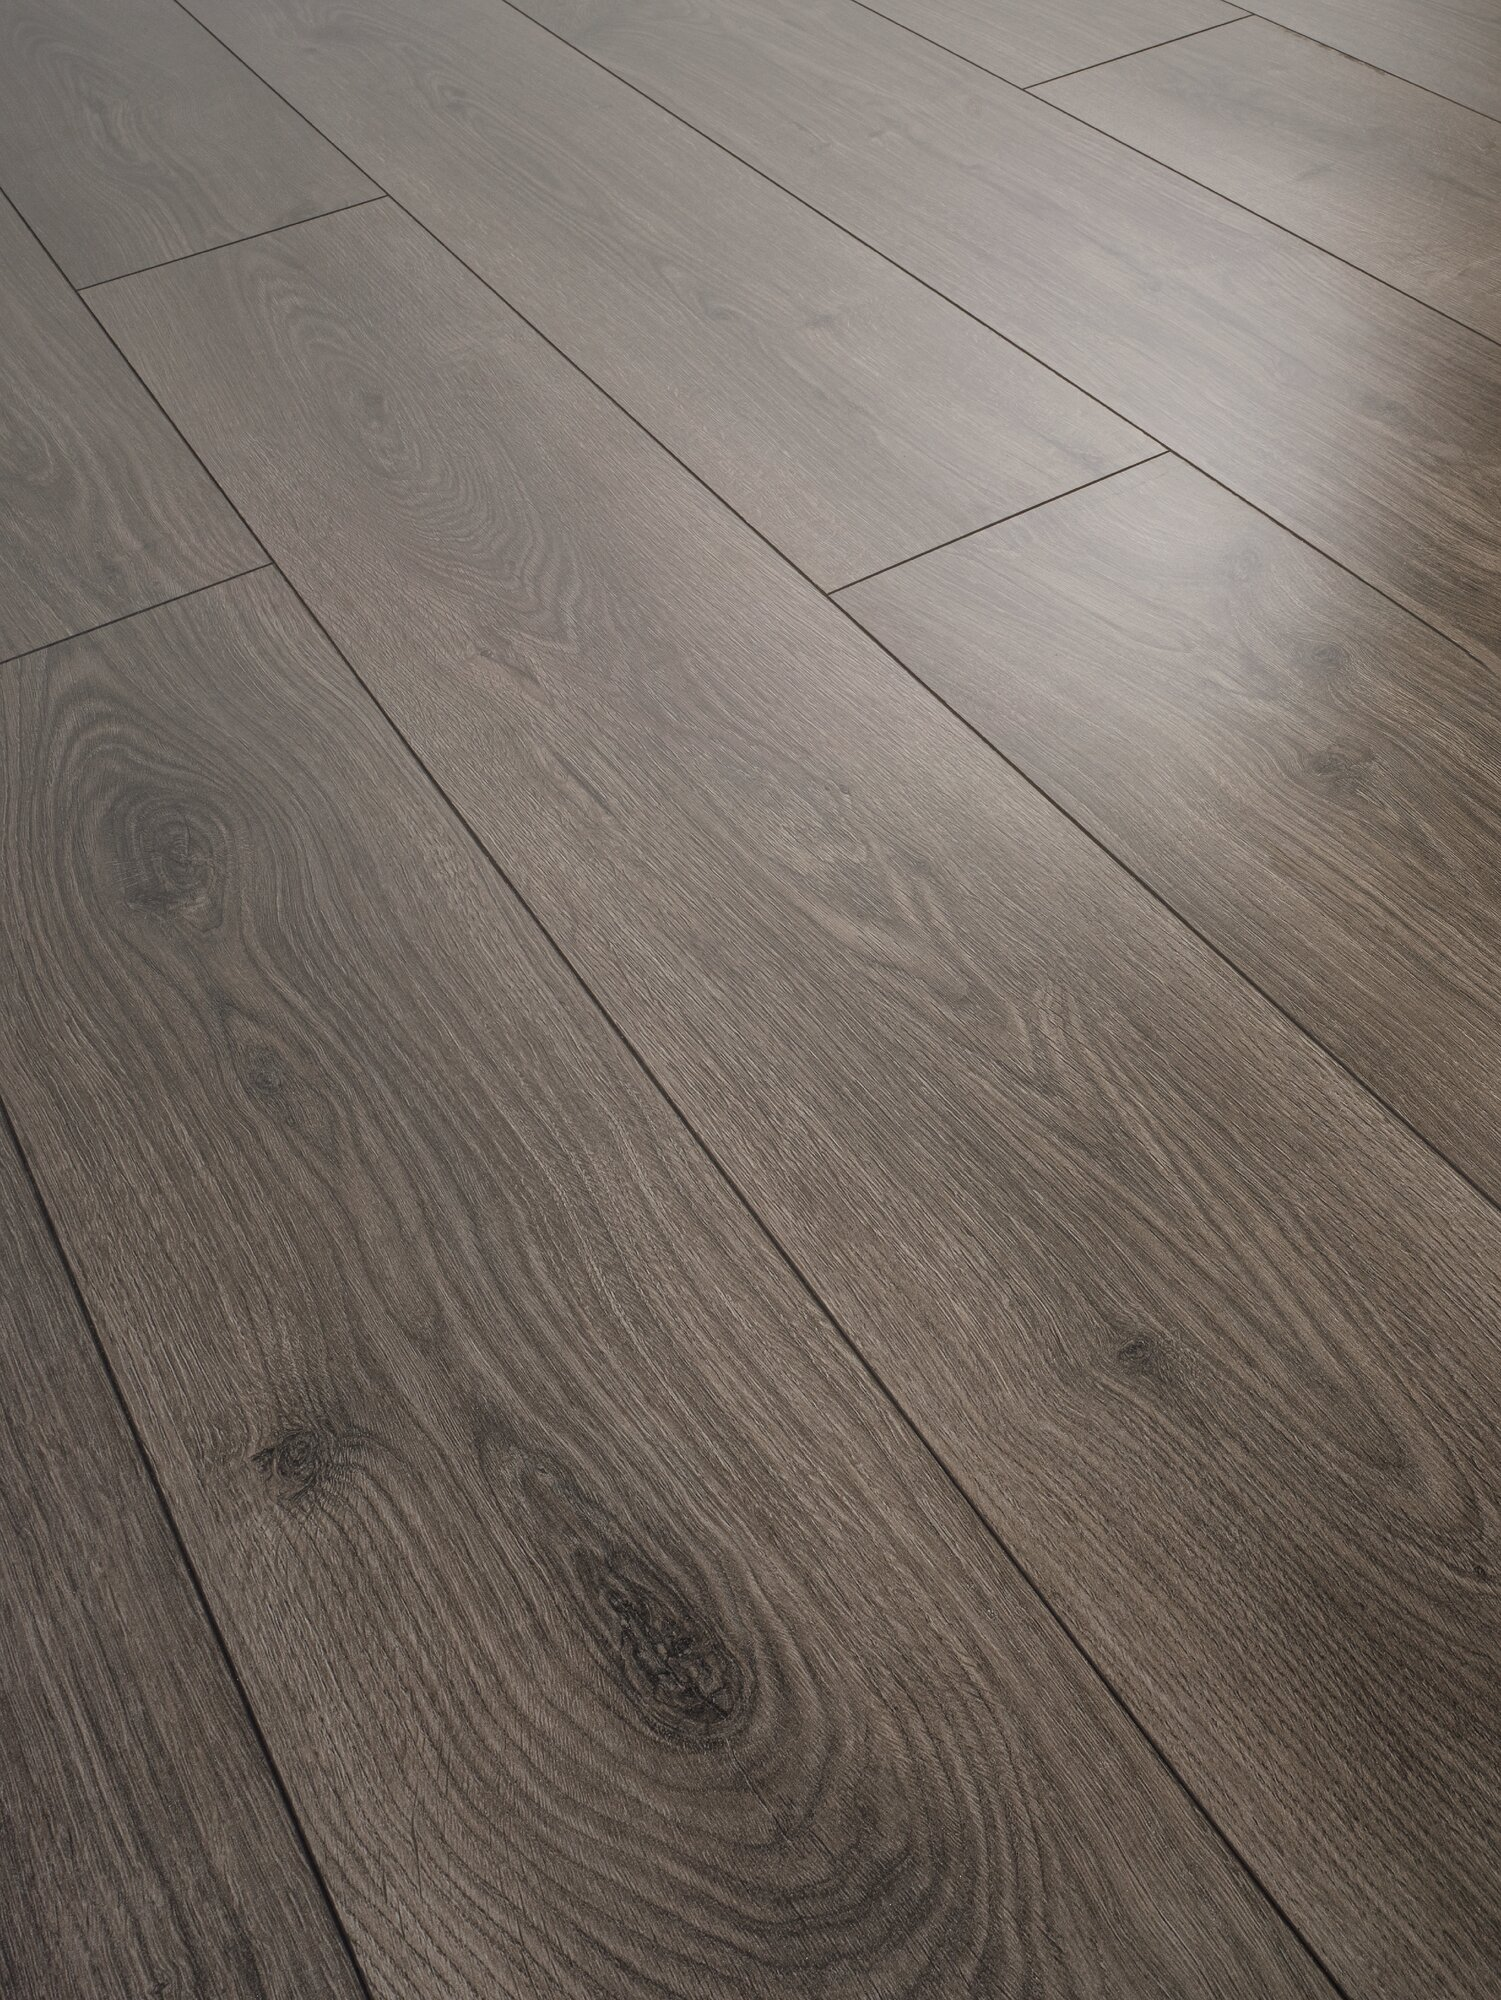 Parchet laminat rezistent la apa Swiss Krono Liberty Natural Oak Coal D 4933 PM